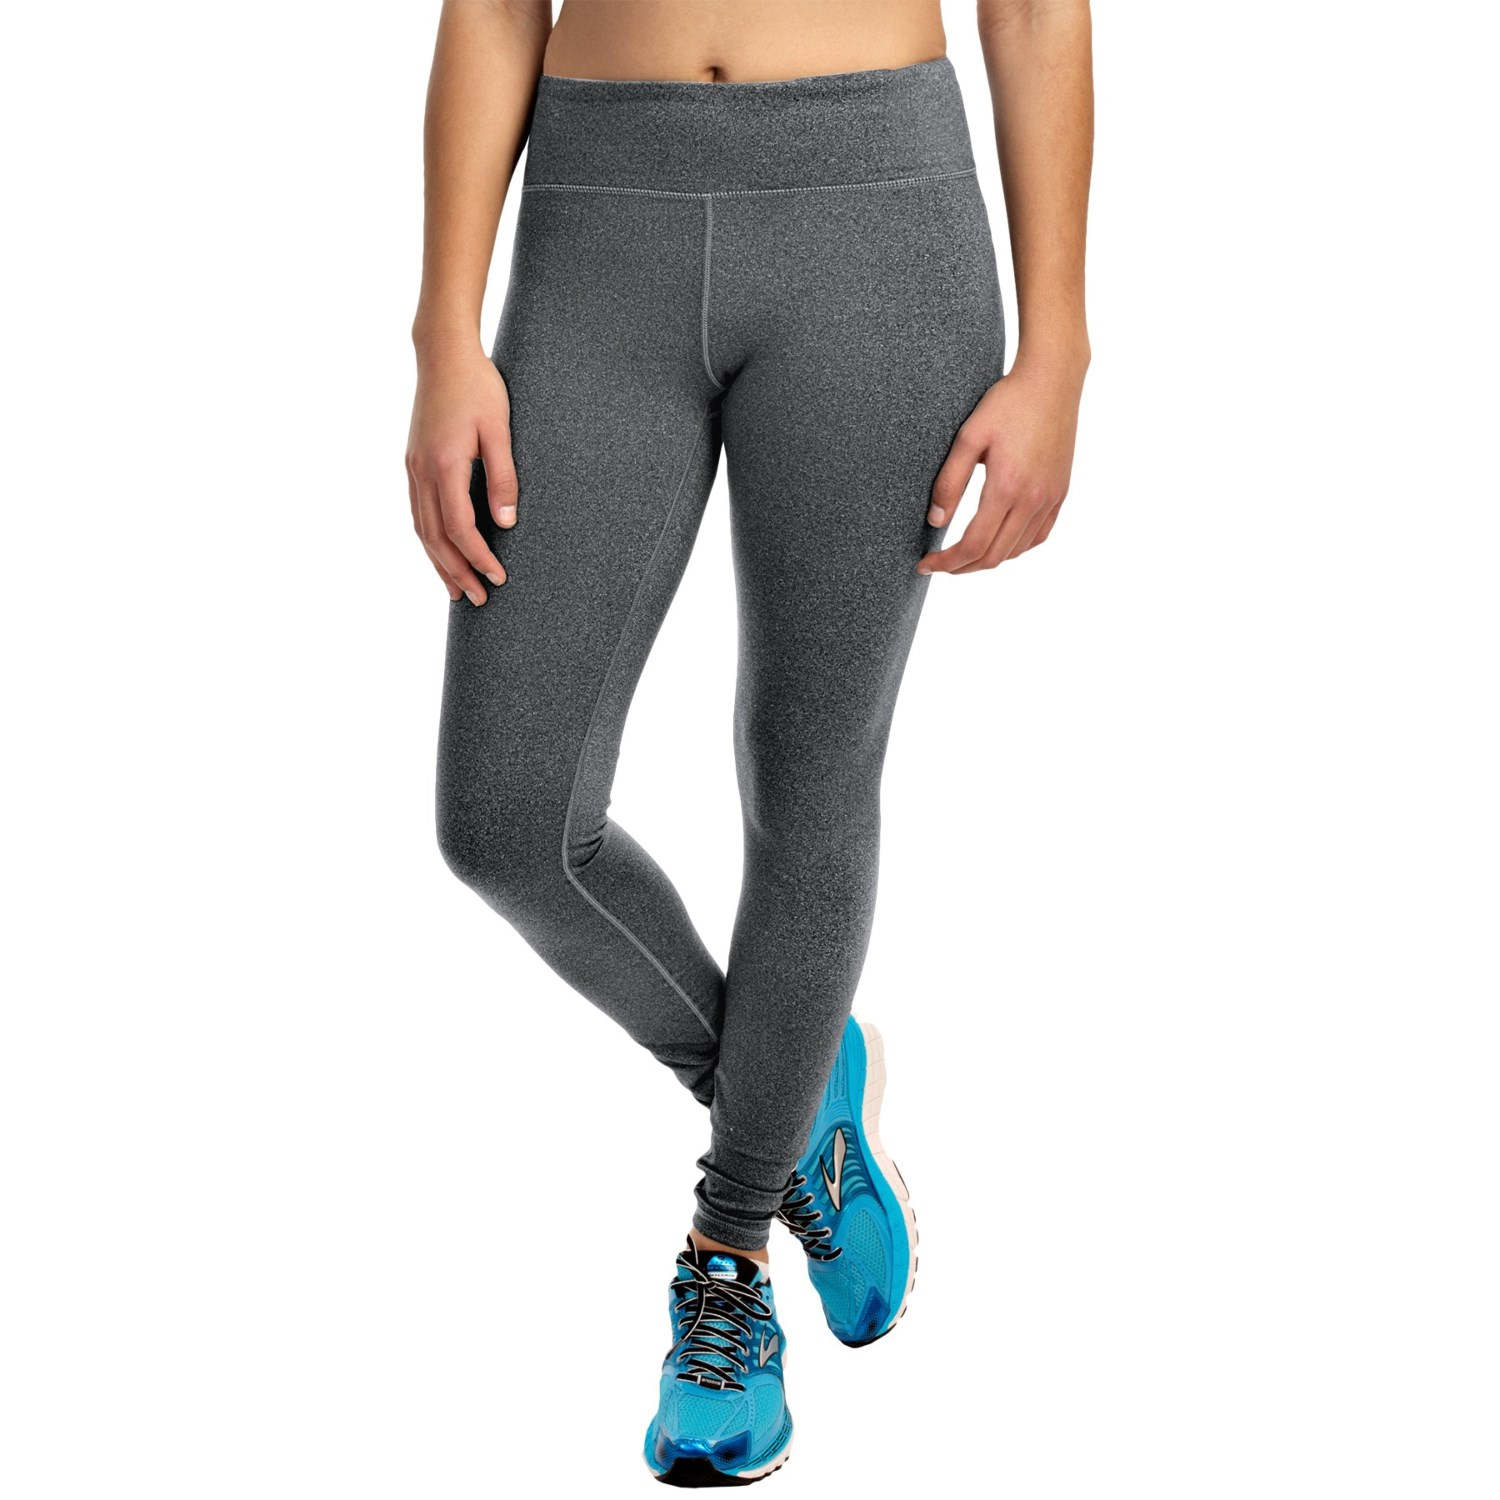 3e27724c5d Kyodan Slimming Leggings (For Women) - Save 50%